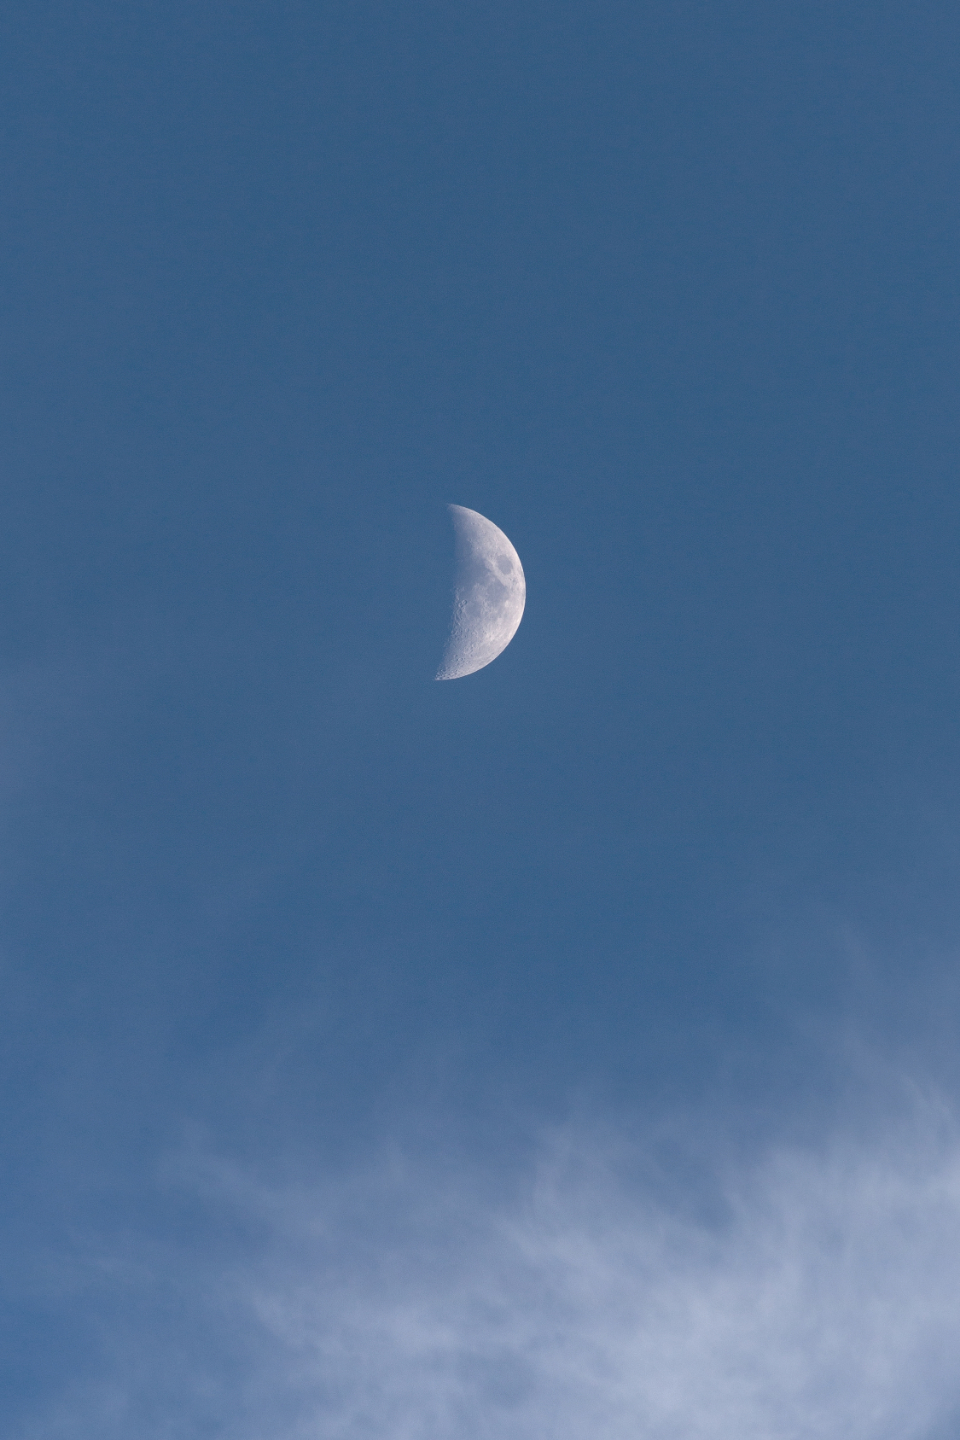 moon blue sky clouds daytime nature outdoors space lunar atmosphere crater half tranquil